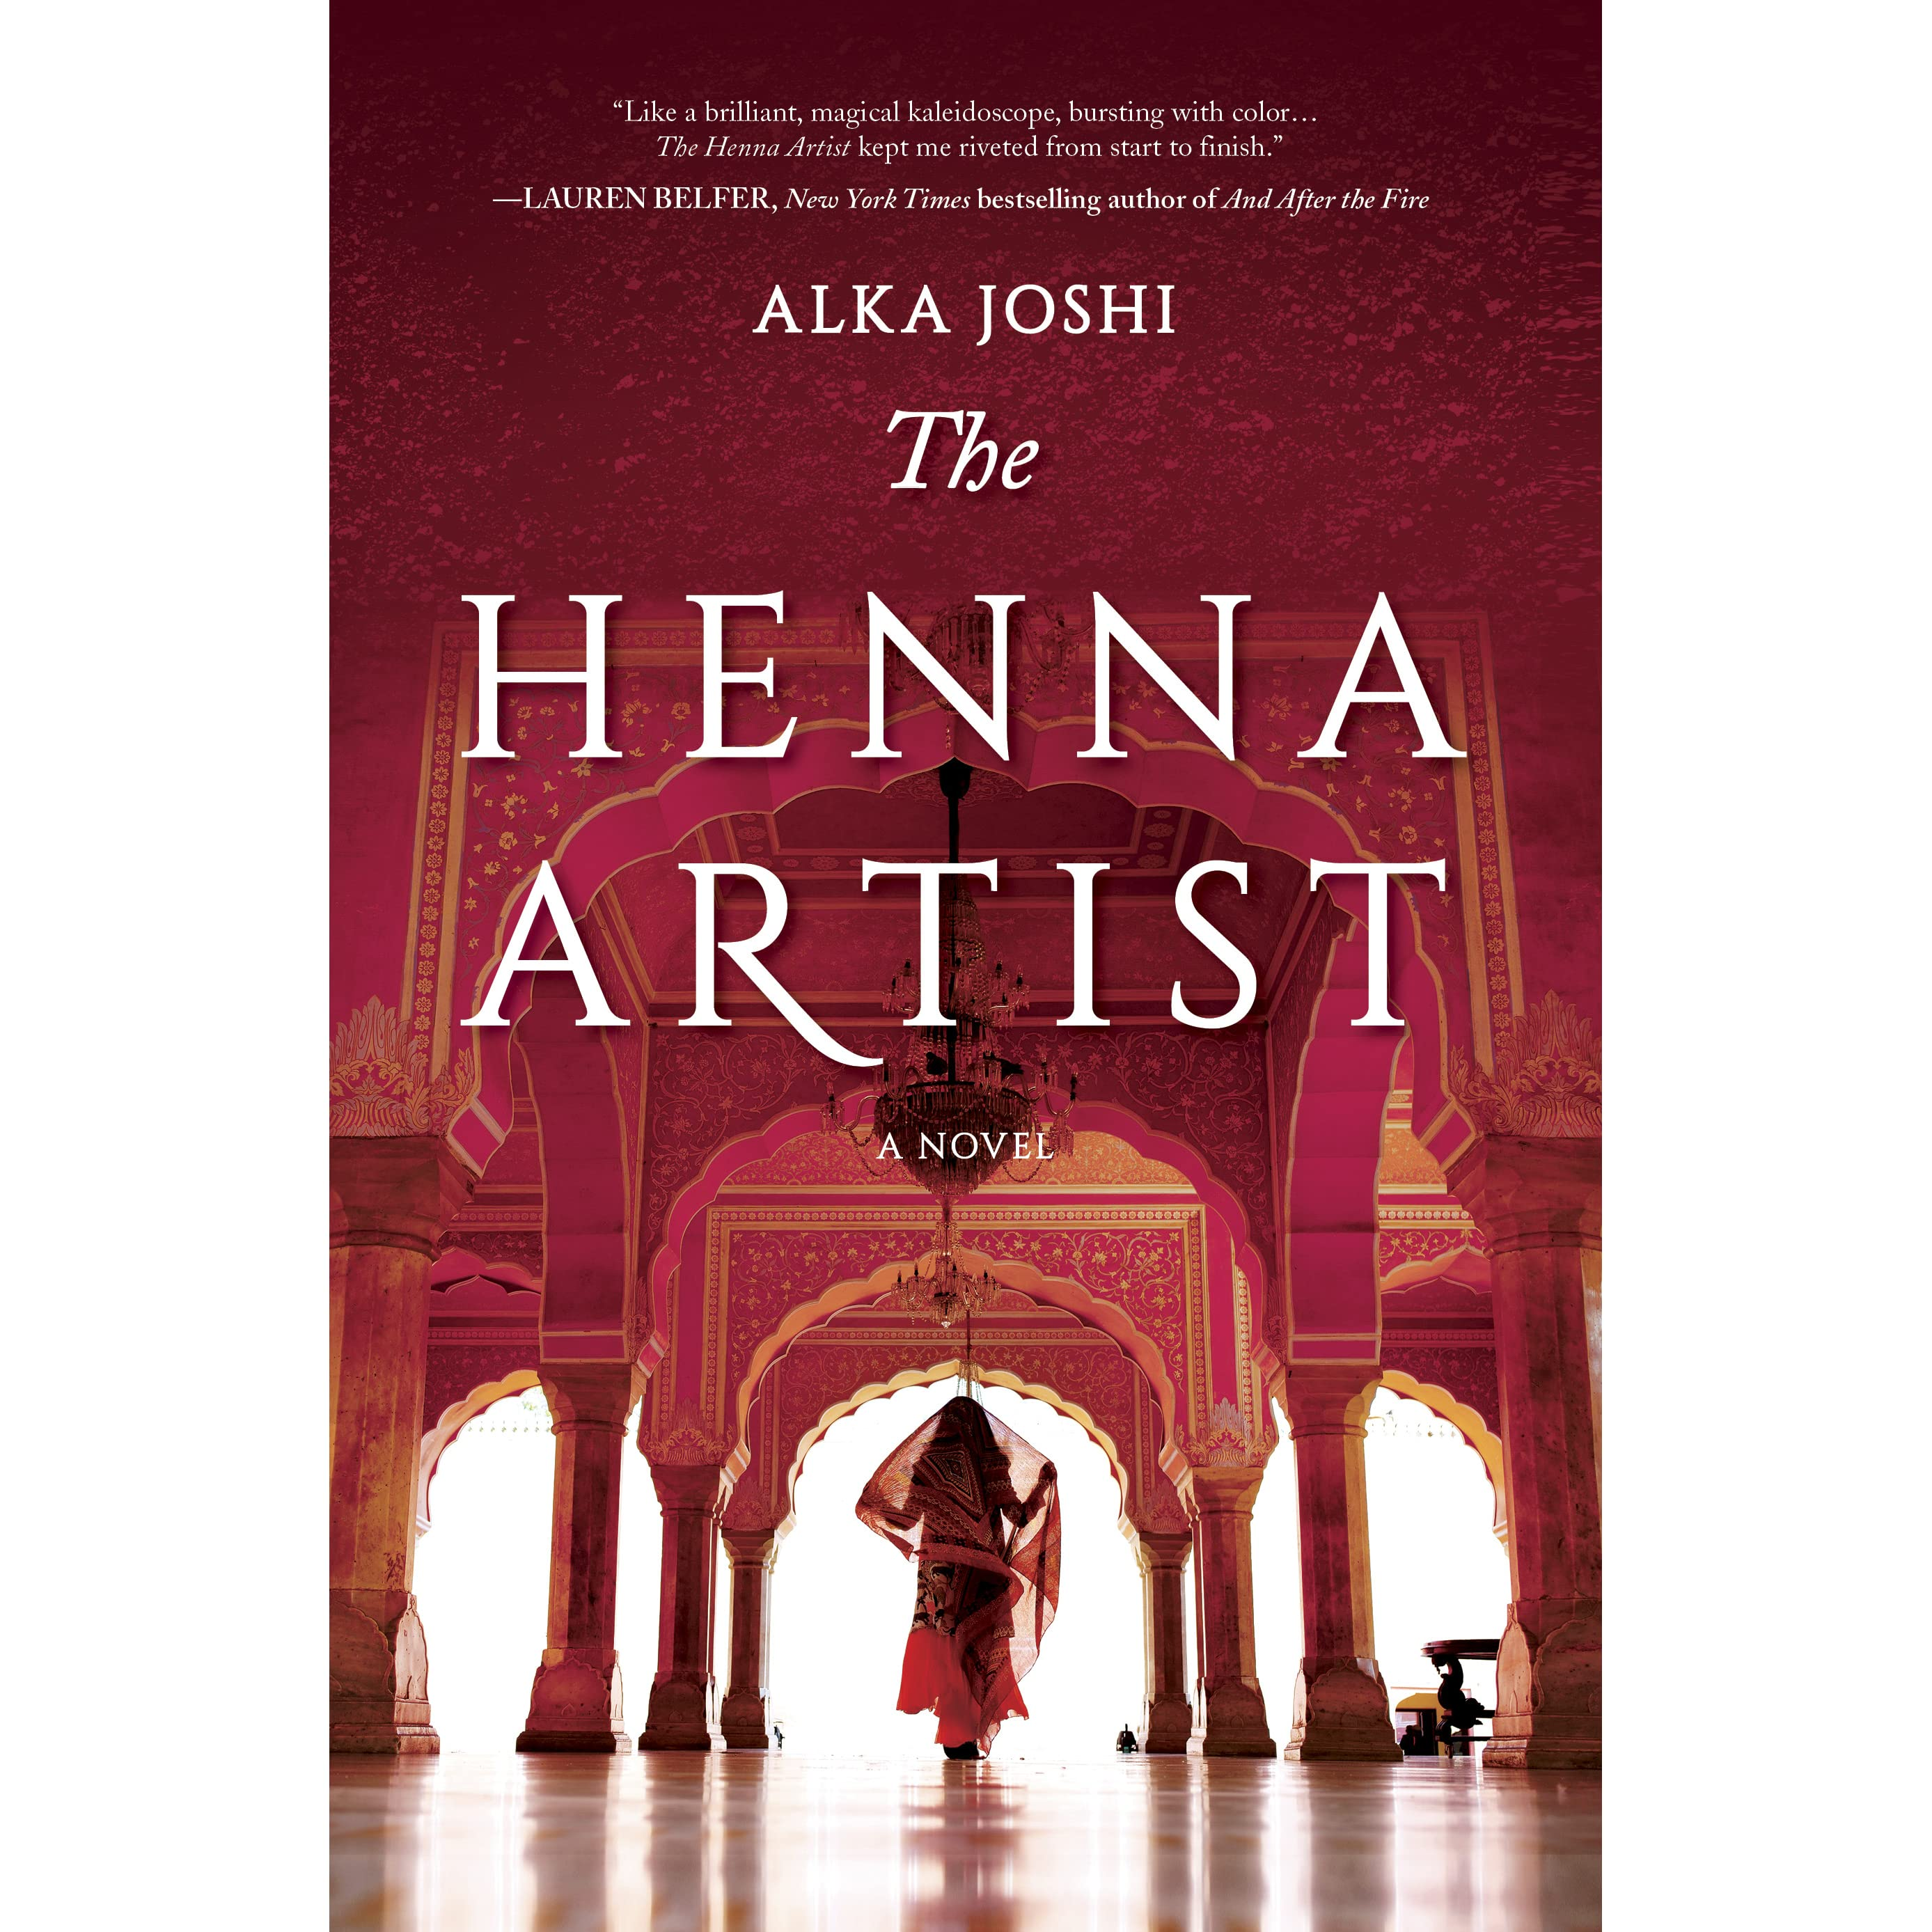 Lisa S Review Of The Henna Artist